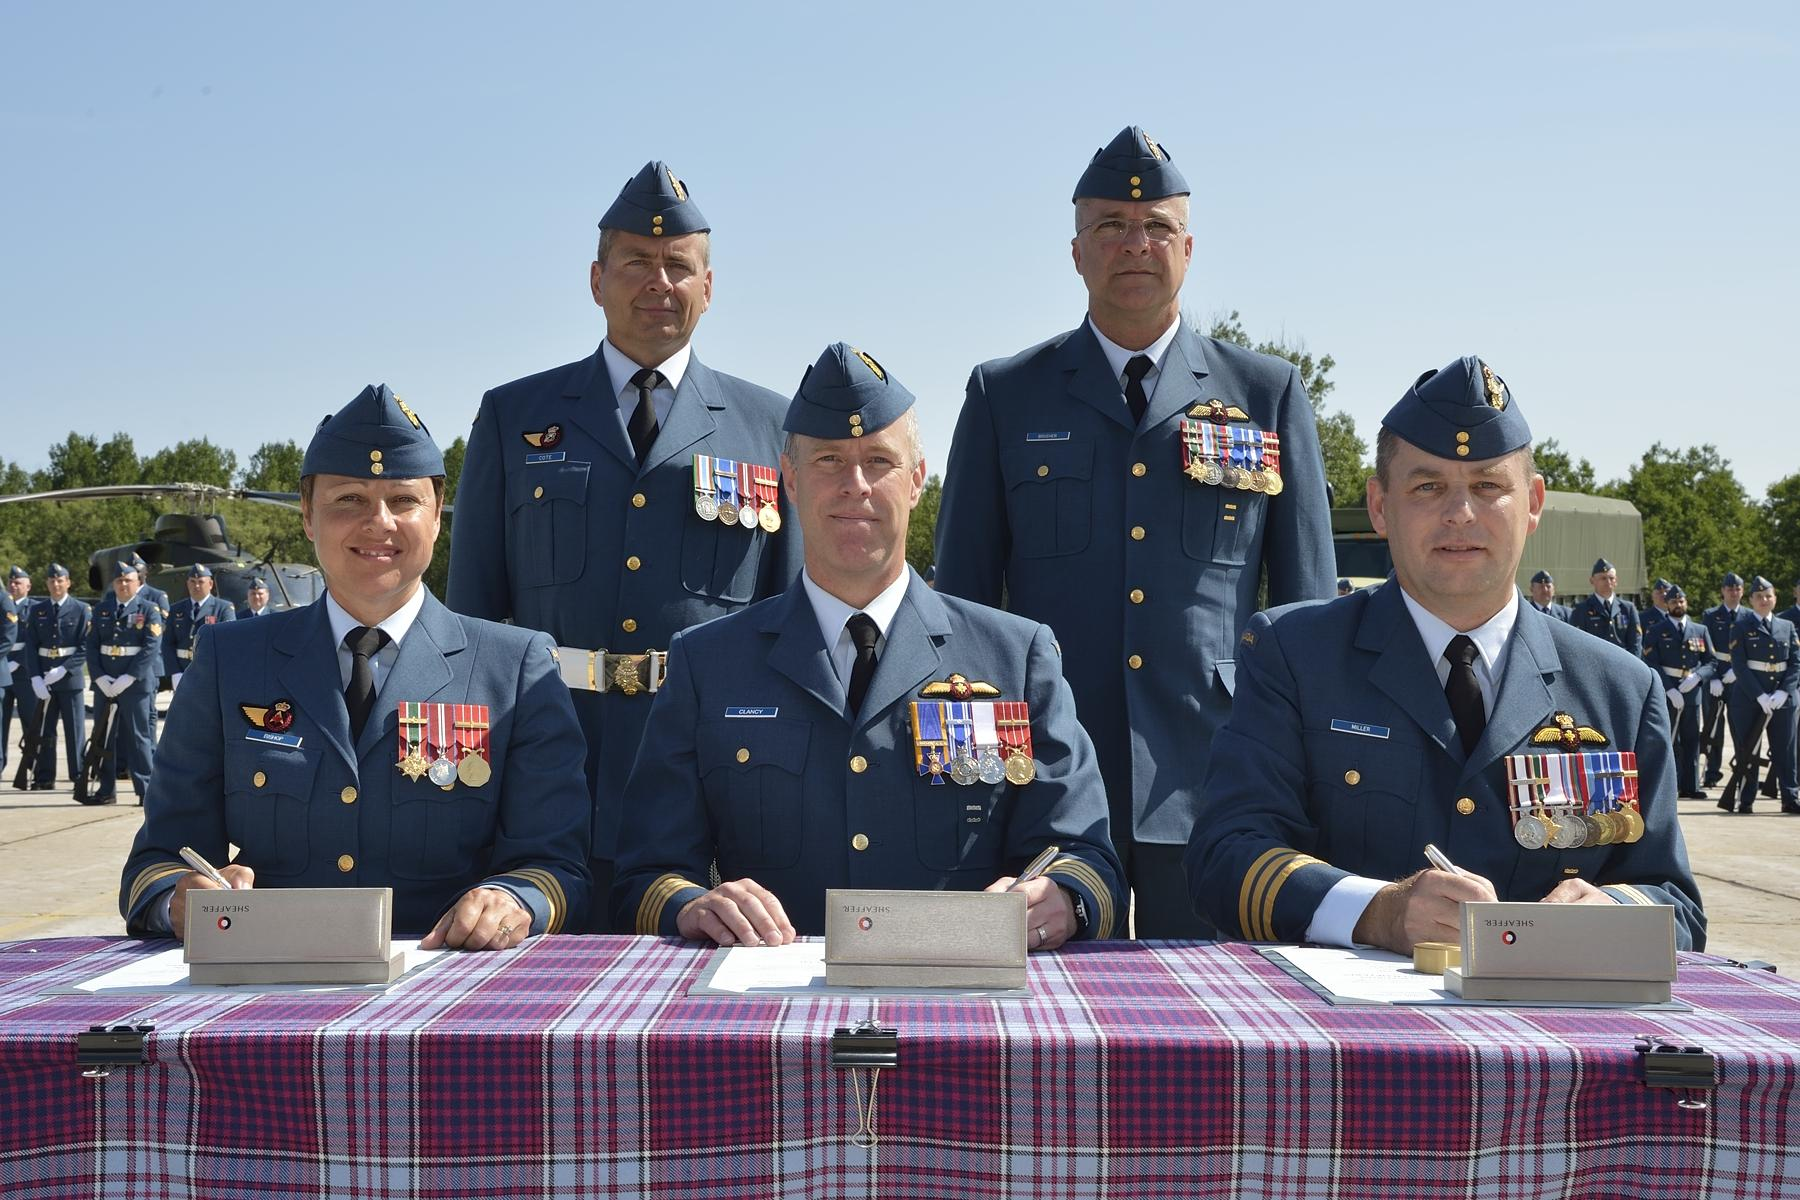 Lieutenant-Colonel Jill Bishop takes command of 400 Tactical Helicopter Squadron from Lieutenant-Colonel Dave Miller at a ceremony held in Borden on July 15, 2015. Colonel Scott Clancy, centre, commander of 1 Wing to which 400 Squadron reports, presided over the ceremony. In the back row are Master Warrant Officer Yvan Coté (left), 400 Squadron's acting squadron chief warrant officer and Chief Warrant Officer Jacques Boucher, 1 Wing's chief warrant officer. PHOTO: DND, BM2015-0094-42